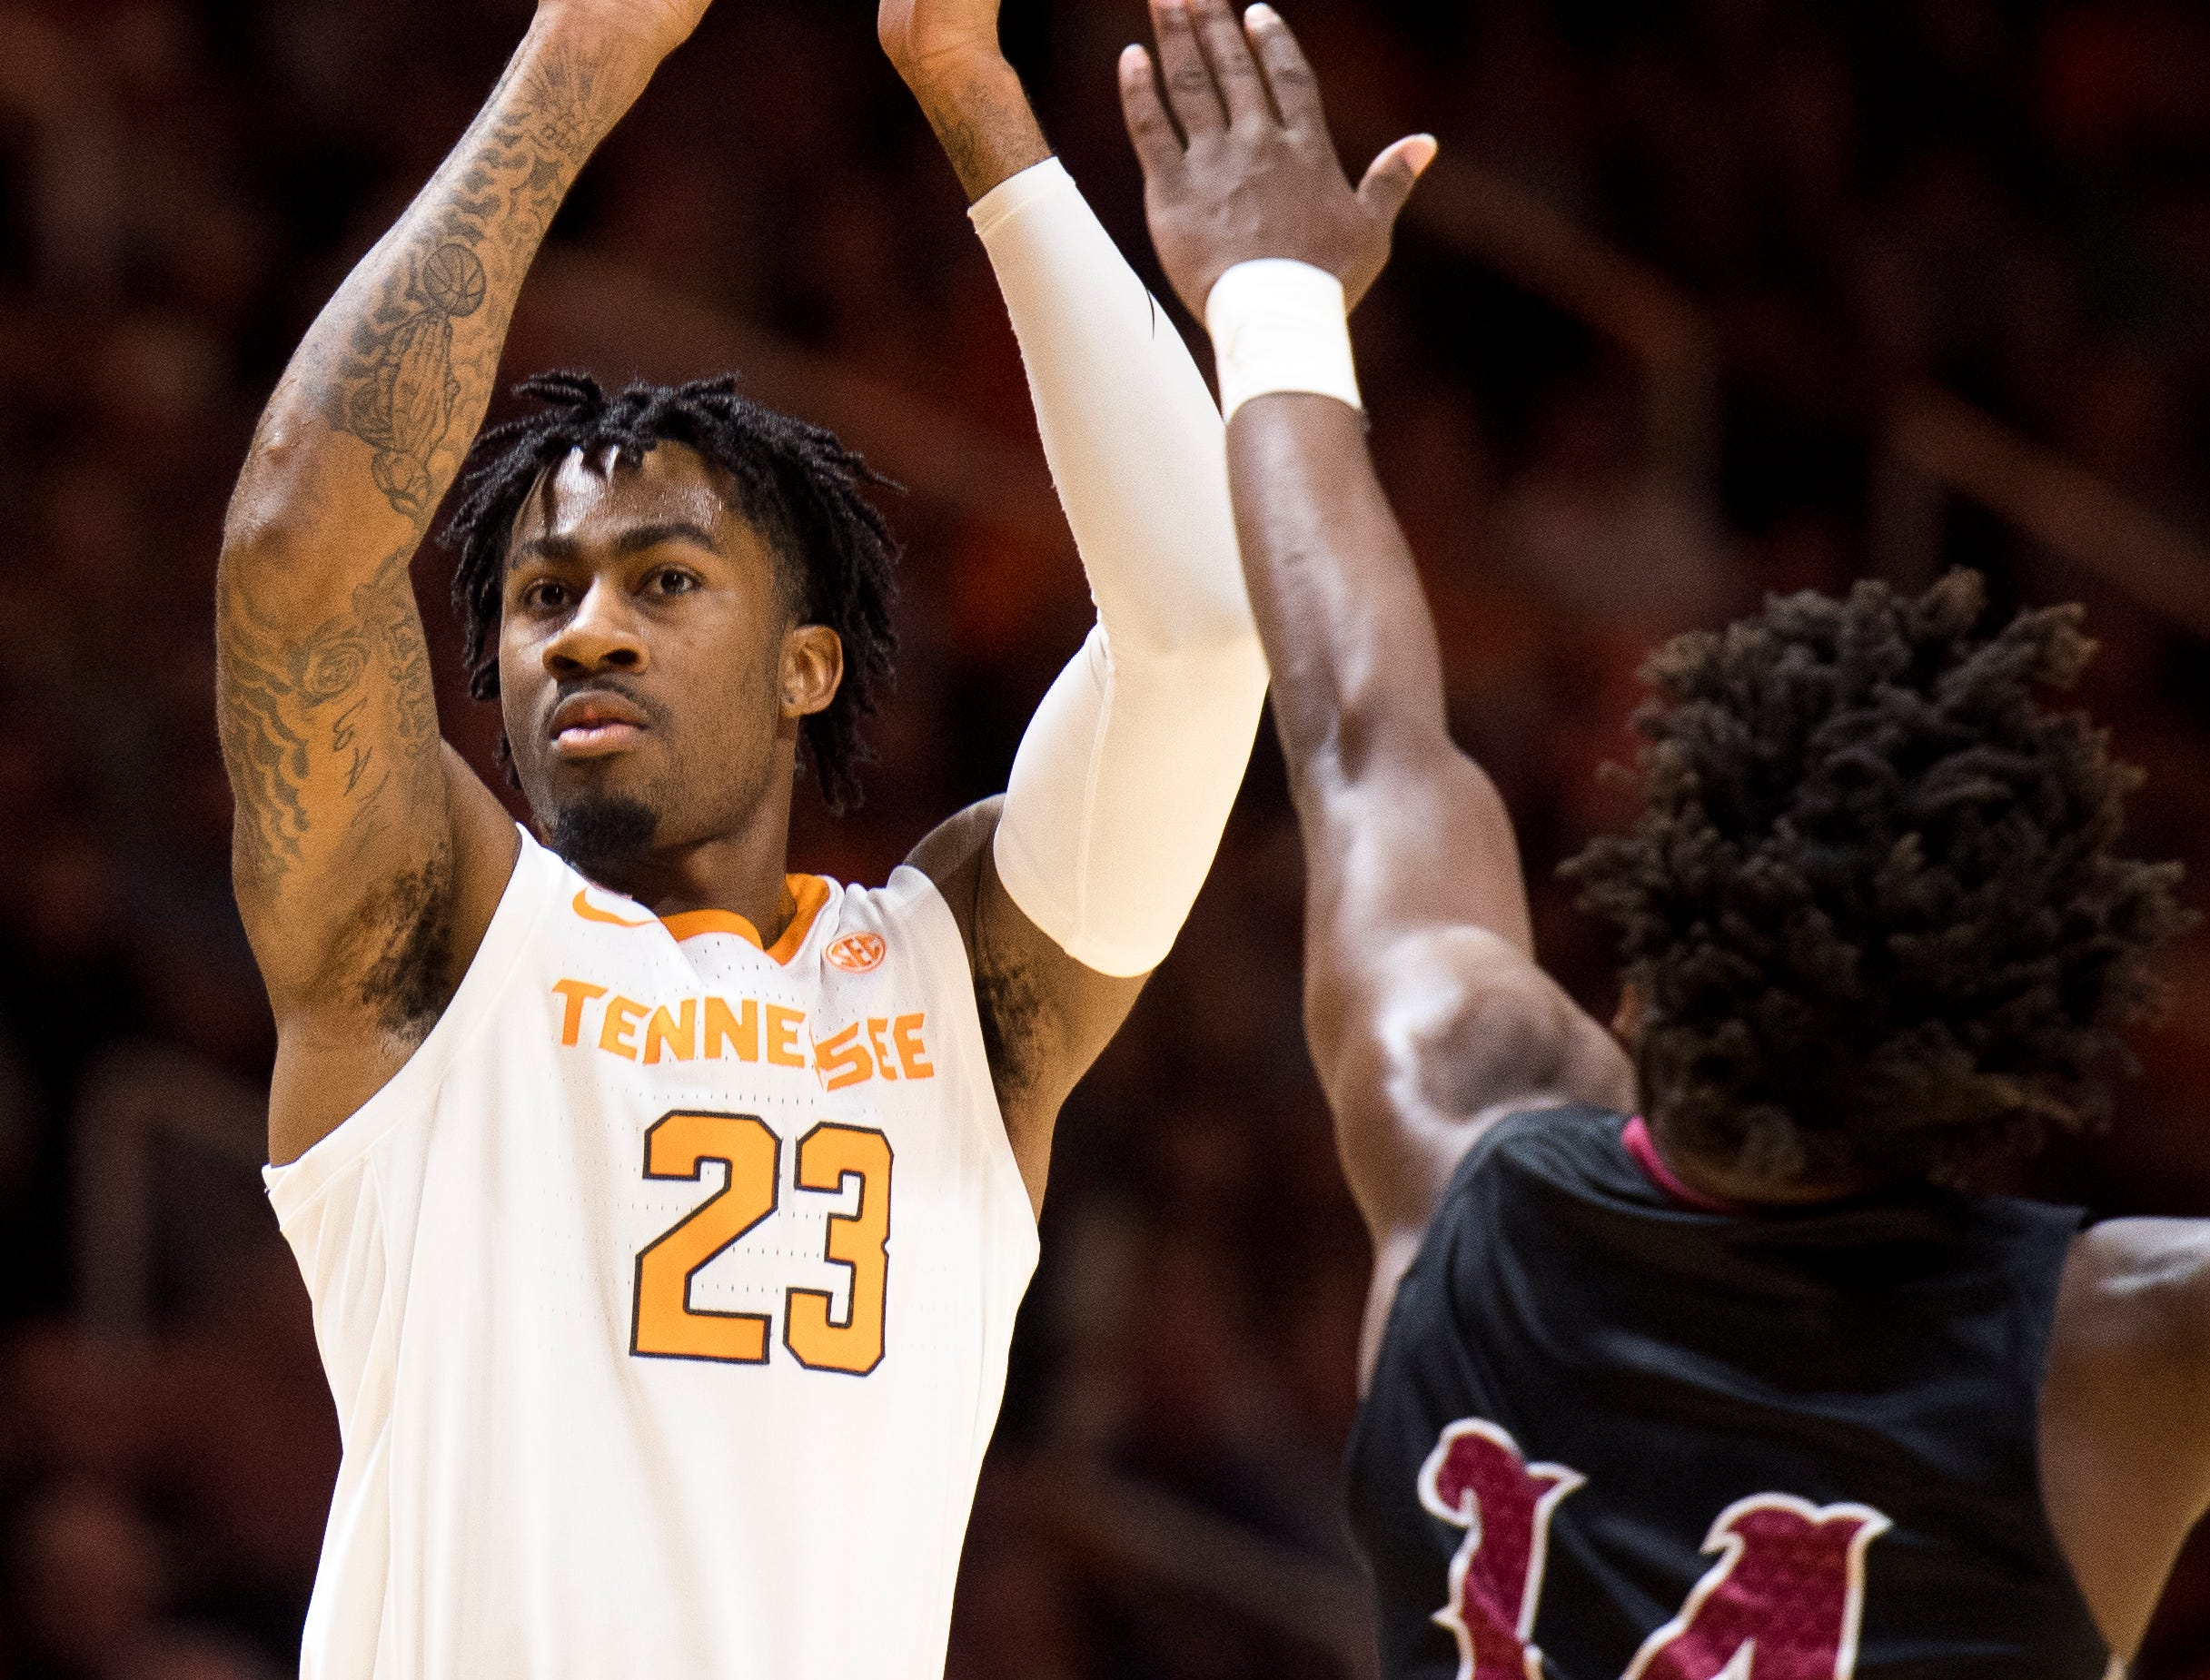 Tennessee guard Jordan Bowden (23) attempts a shot during Tennessee's basketball game against Lenoir-Rhyne at Thompson-Boling Arena in Knoxville on Tuesday, November 6, 2018.